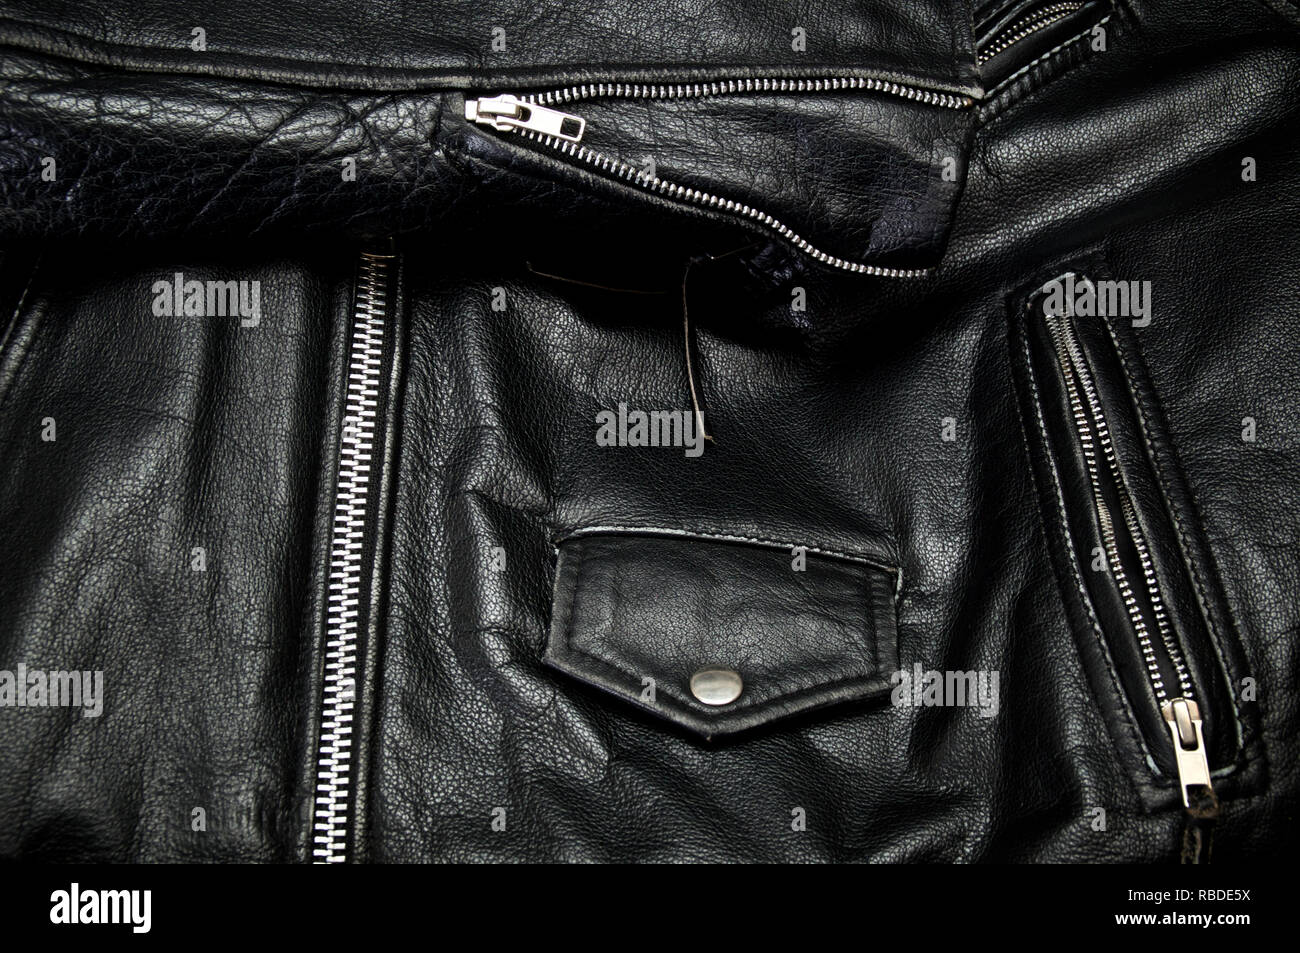 Detail of old black leather police style motorcycle jacket focusing on zippers and  pockets. - Stock Image